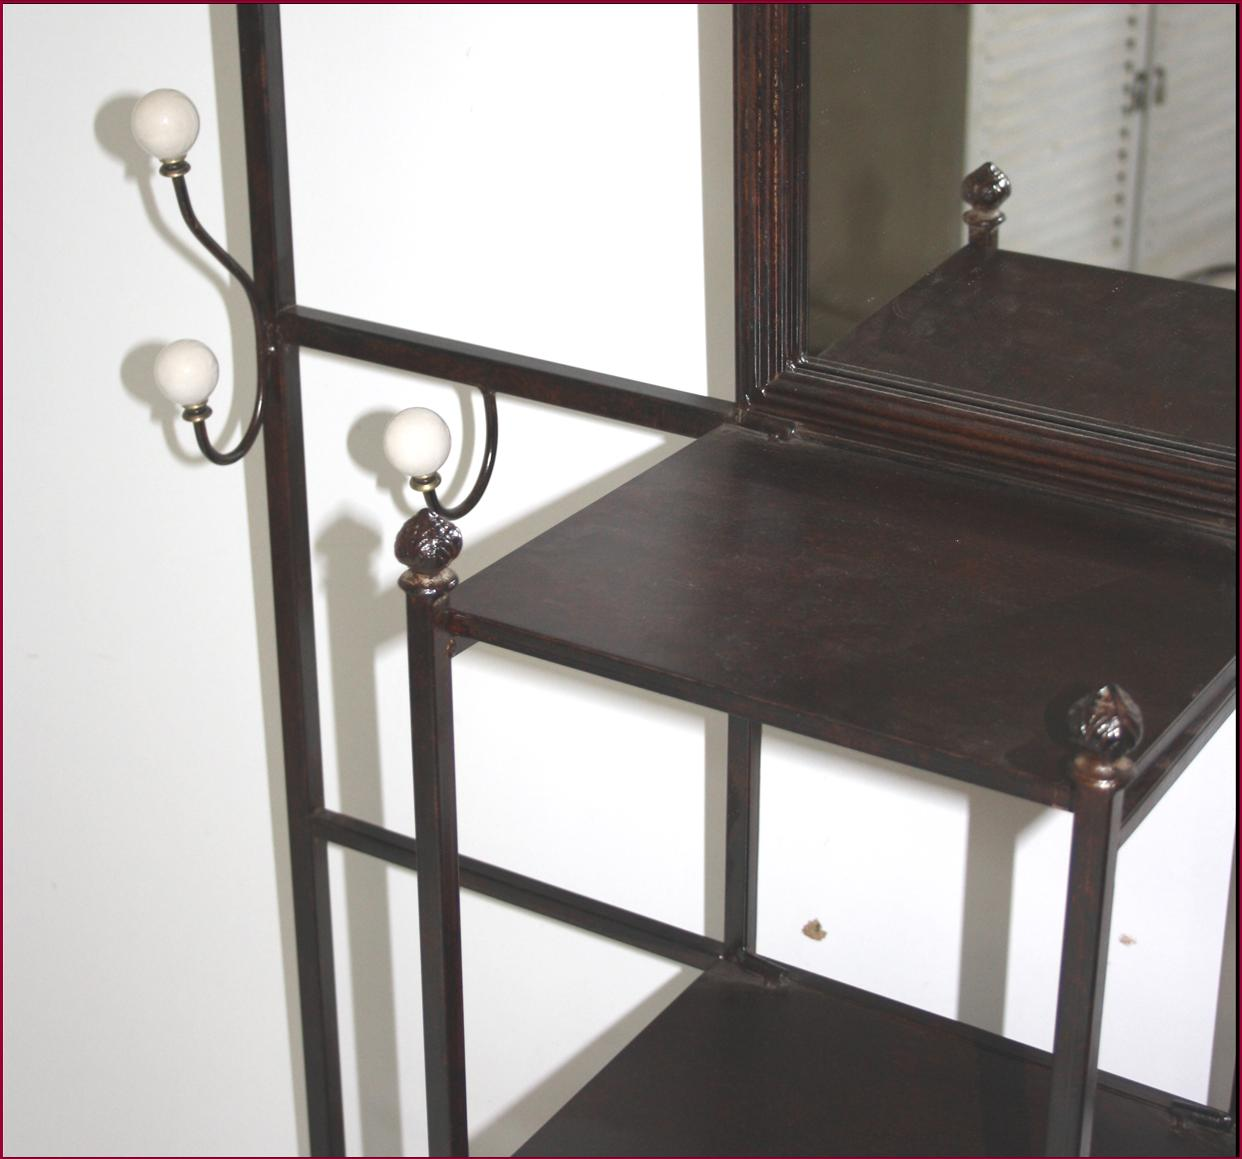 meuble d entree meuble de rangement vestiaire fer forge ebay. Black Bedroom Furniture Sets. Home Design Ideas